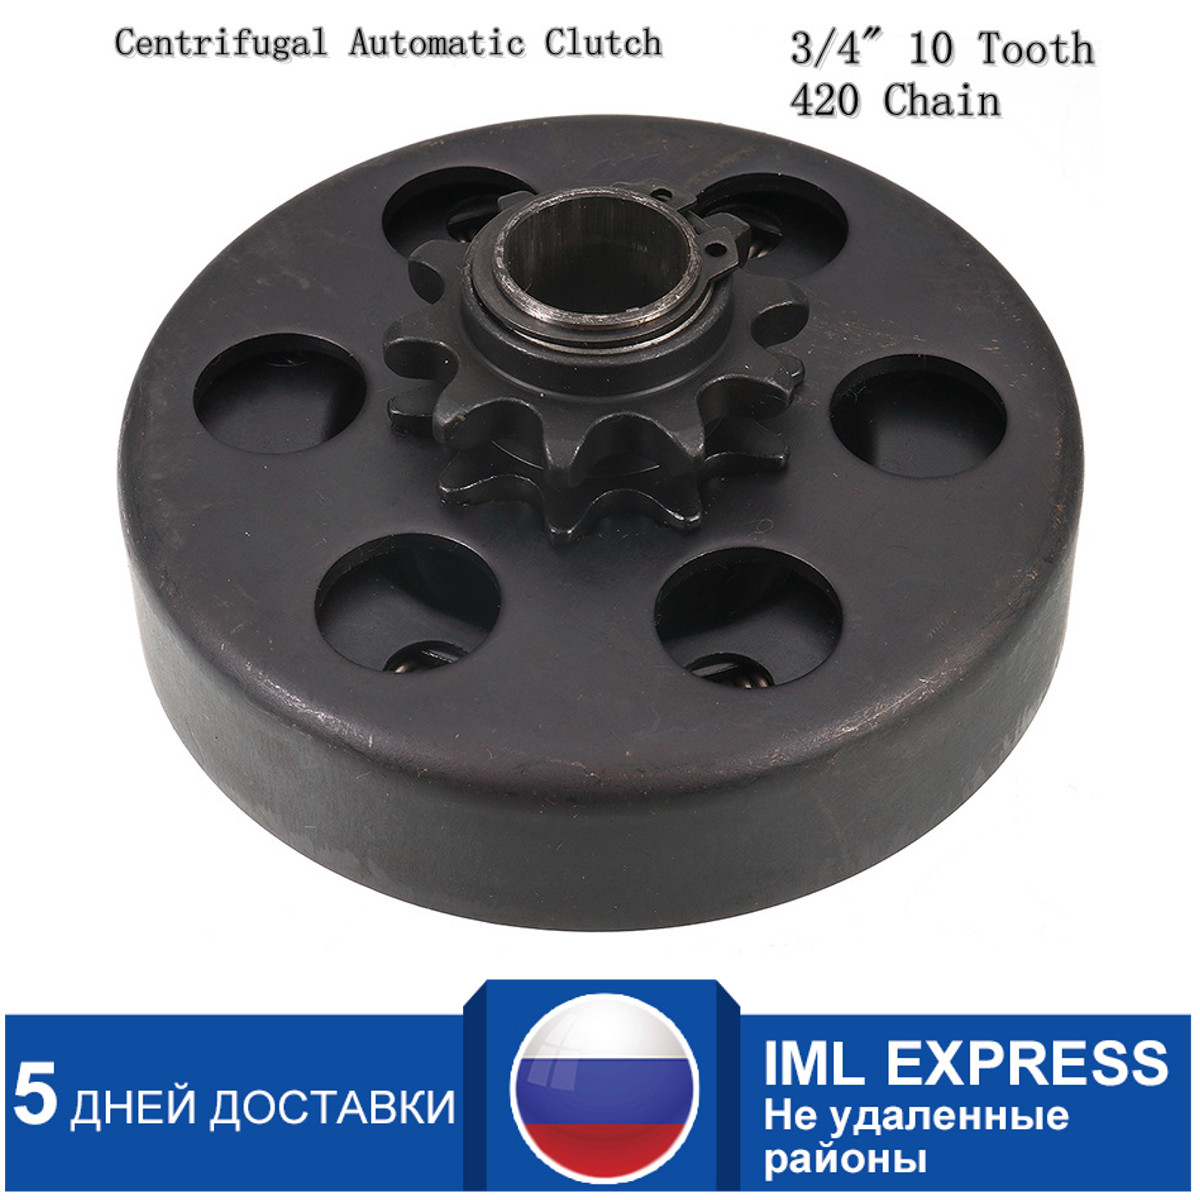 19mm GO Kart Fun Centrifugal Automatic Clutch 3/4 10 Tooth 420 Chain for Karting